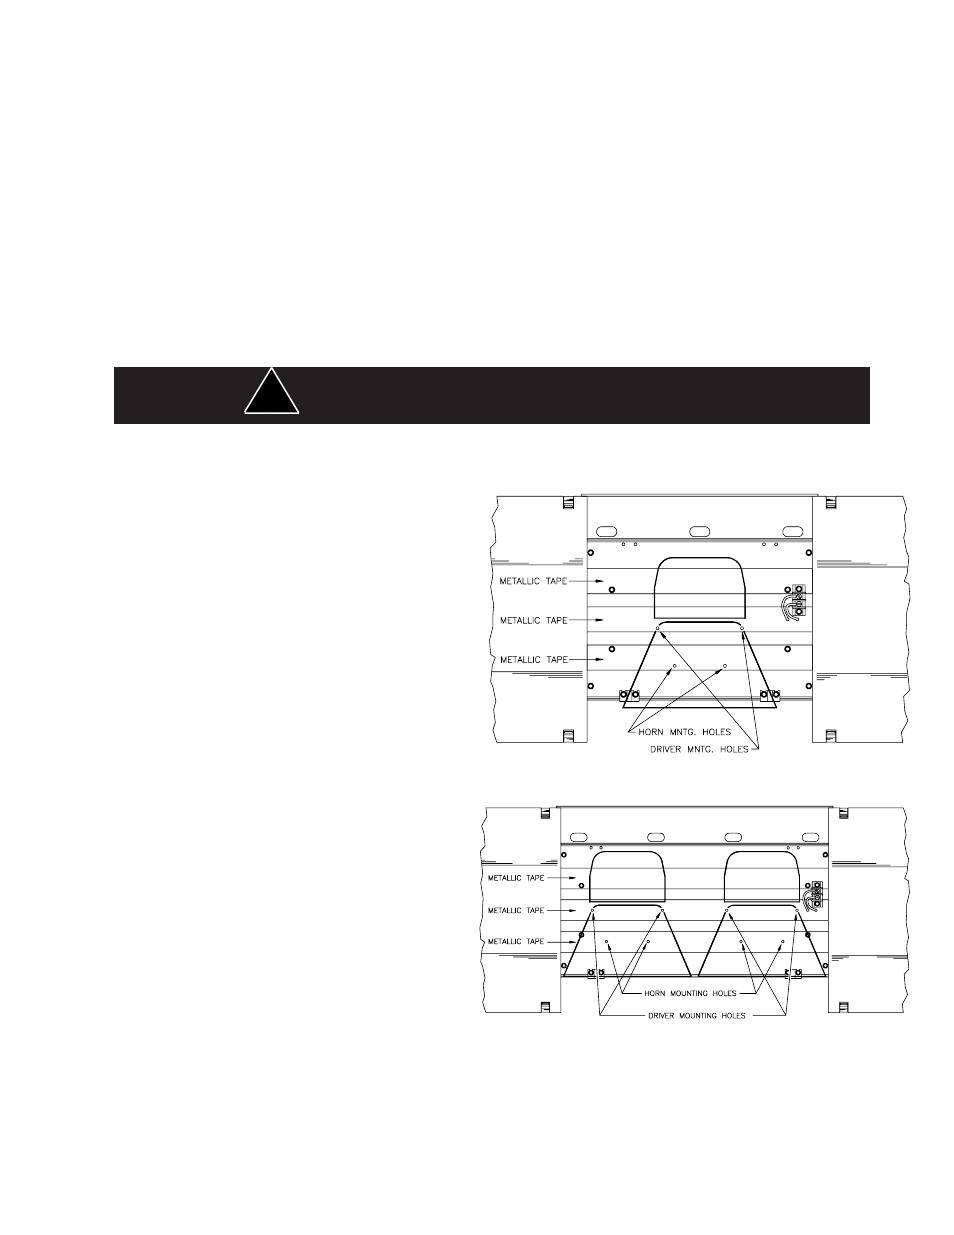 Unpacking Pre Installation Mounting Siren Mx7000 Light Bar Wiring Diagram Speakers Code 3 Mx 7000 User Manual Page 32